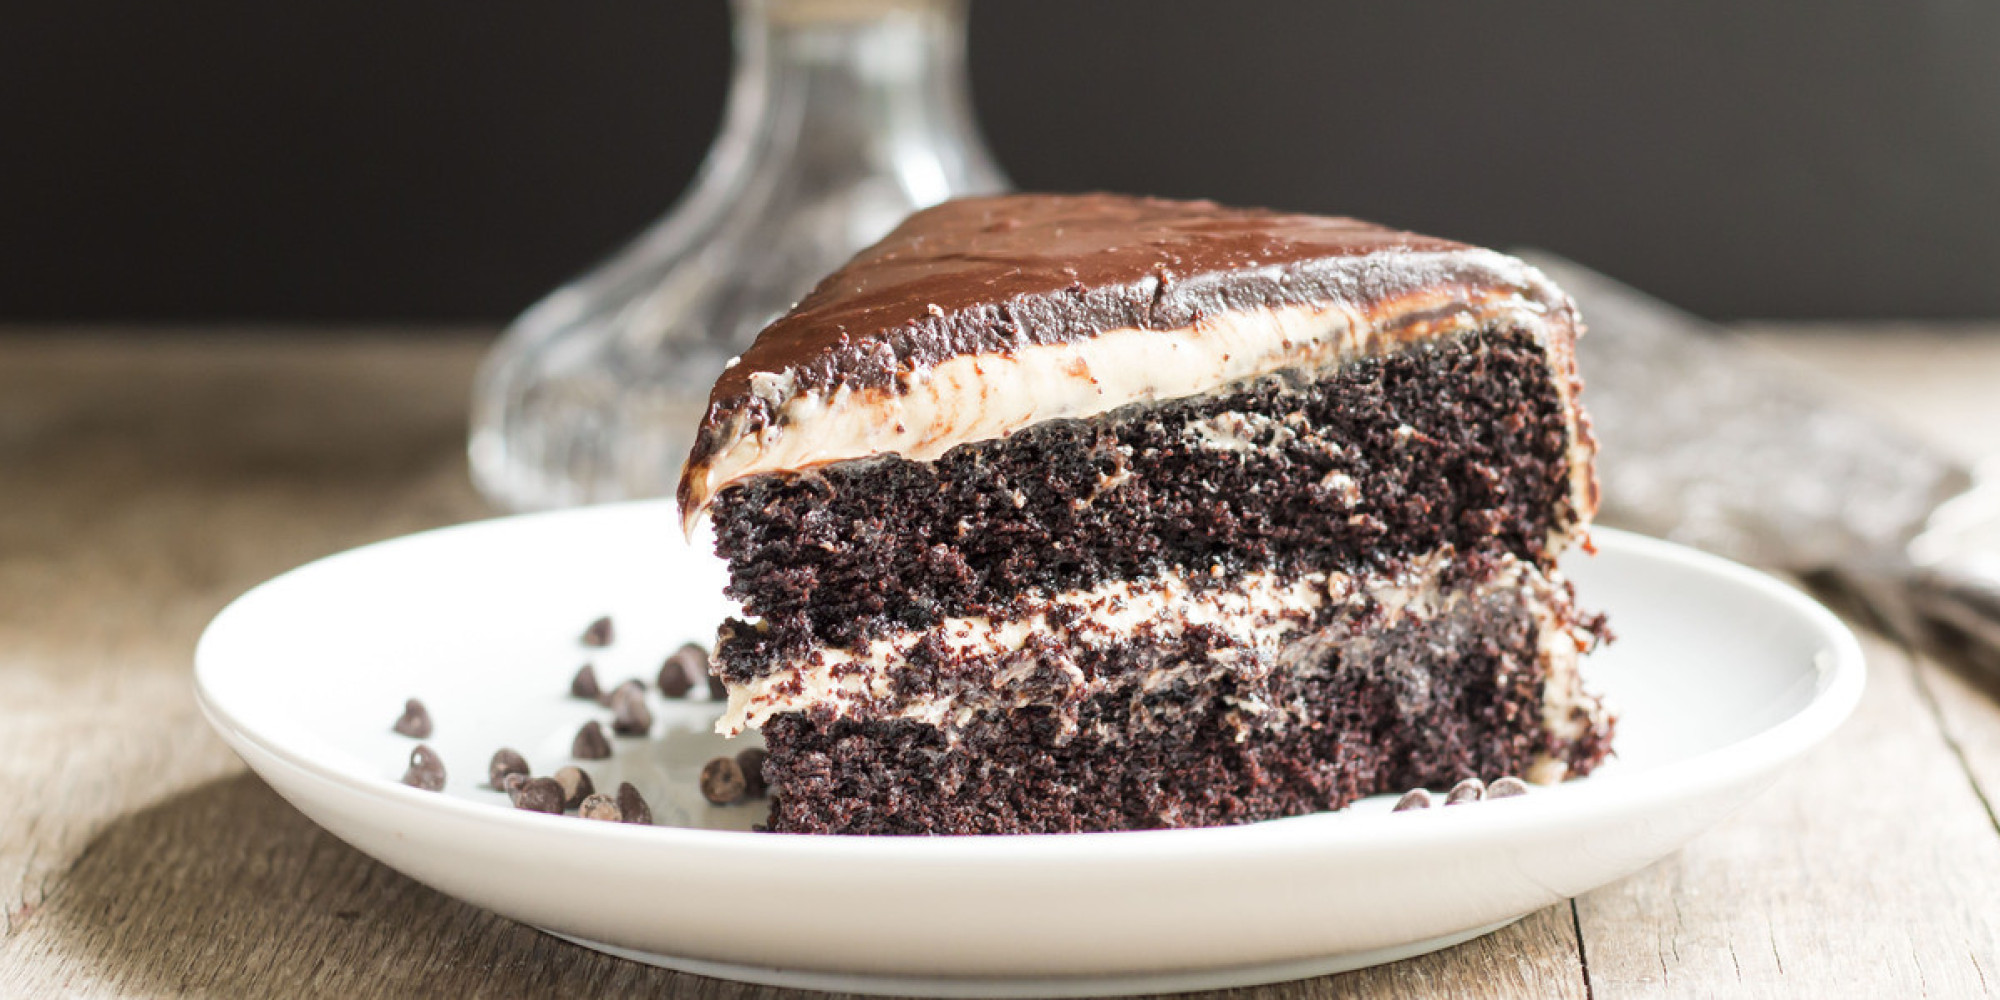 Gluten Free Chocolate Dessert Recipes So Exquisite You Wont Notice The Difference